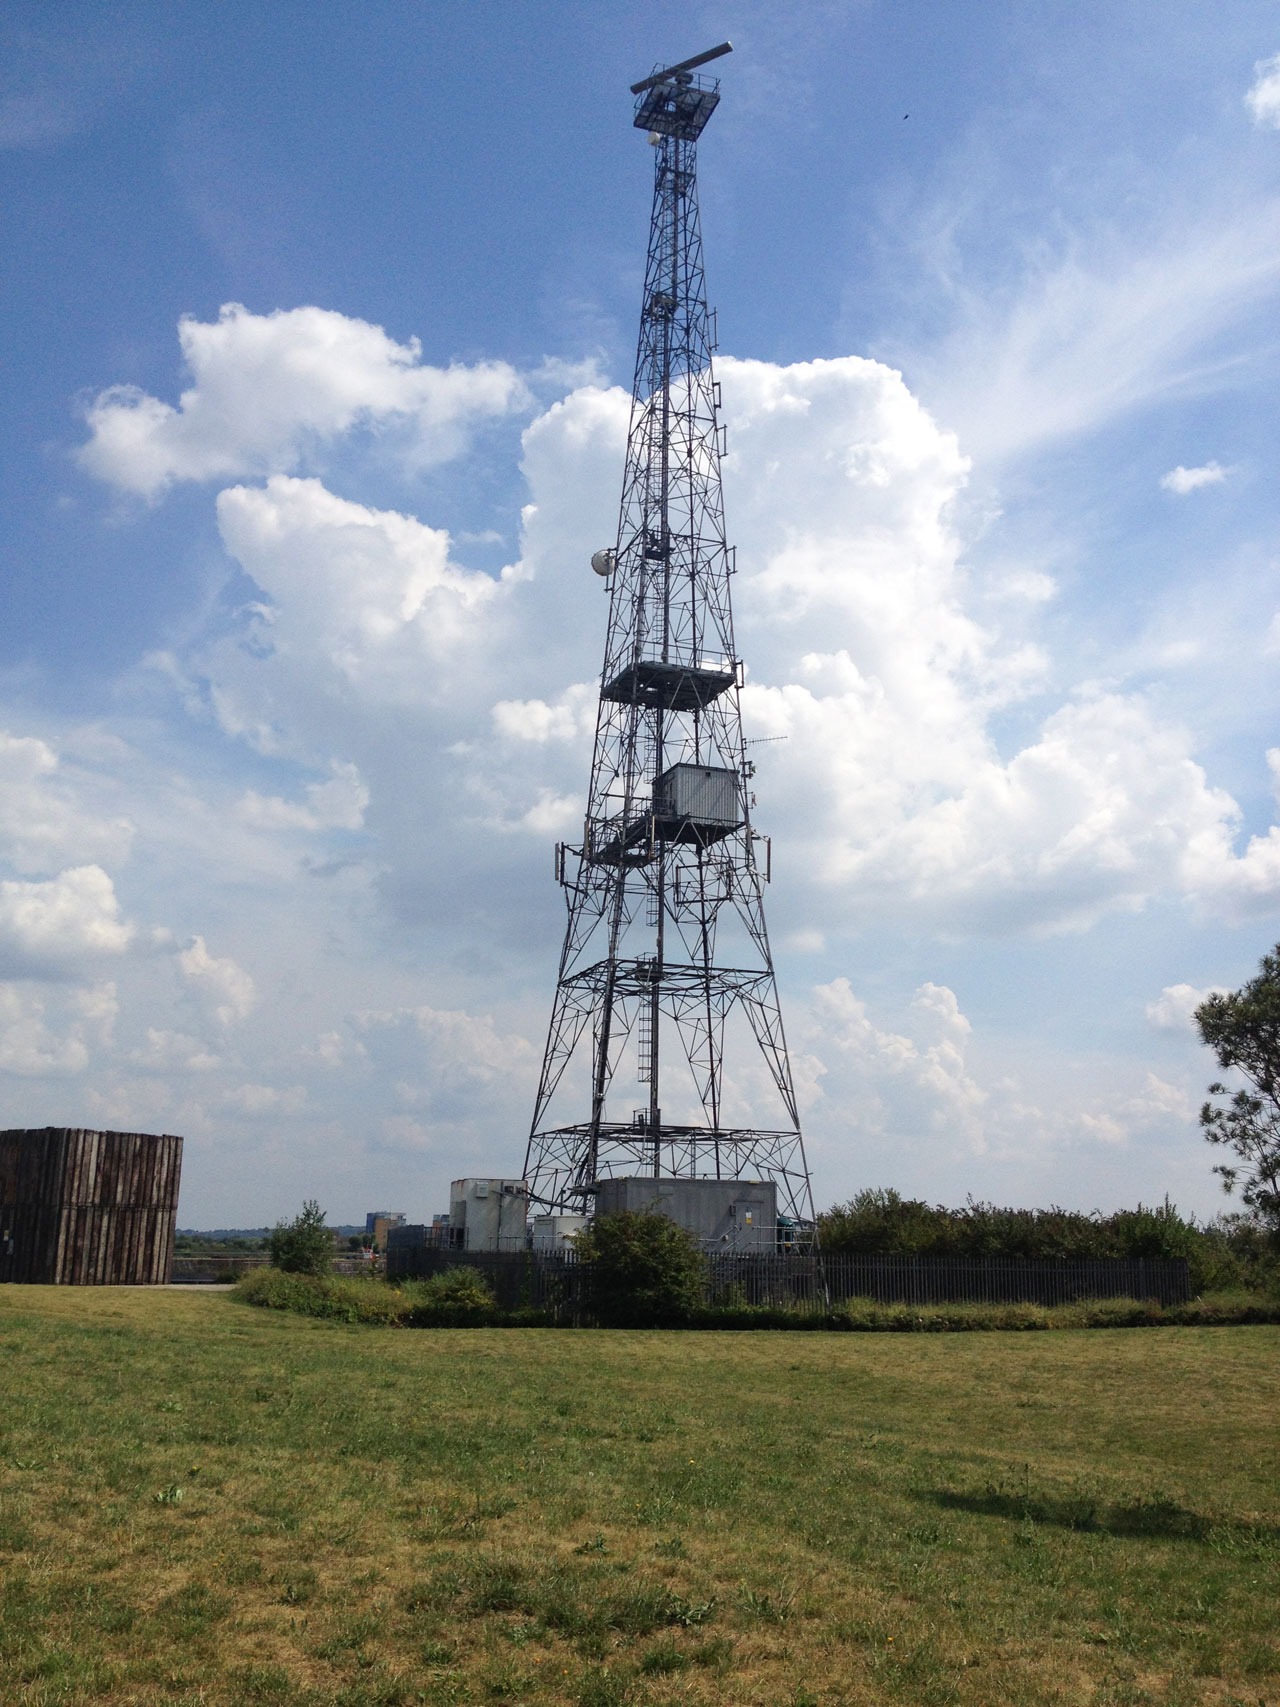 Radio mast at Gallions Reach, London